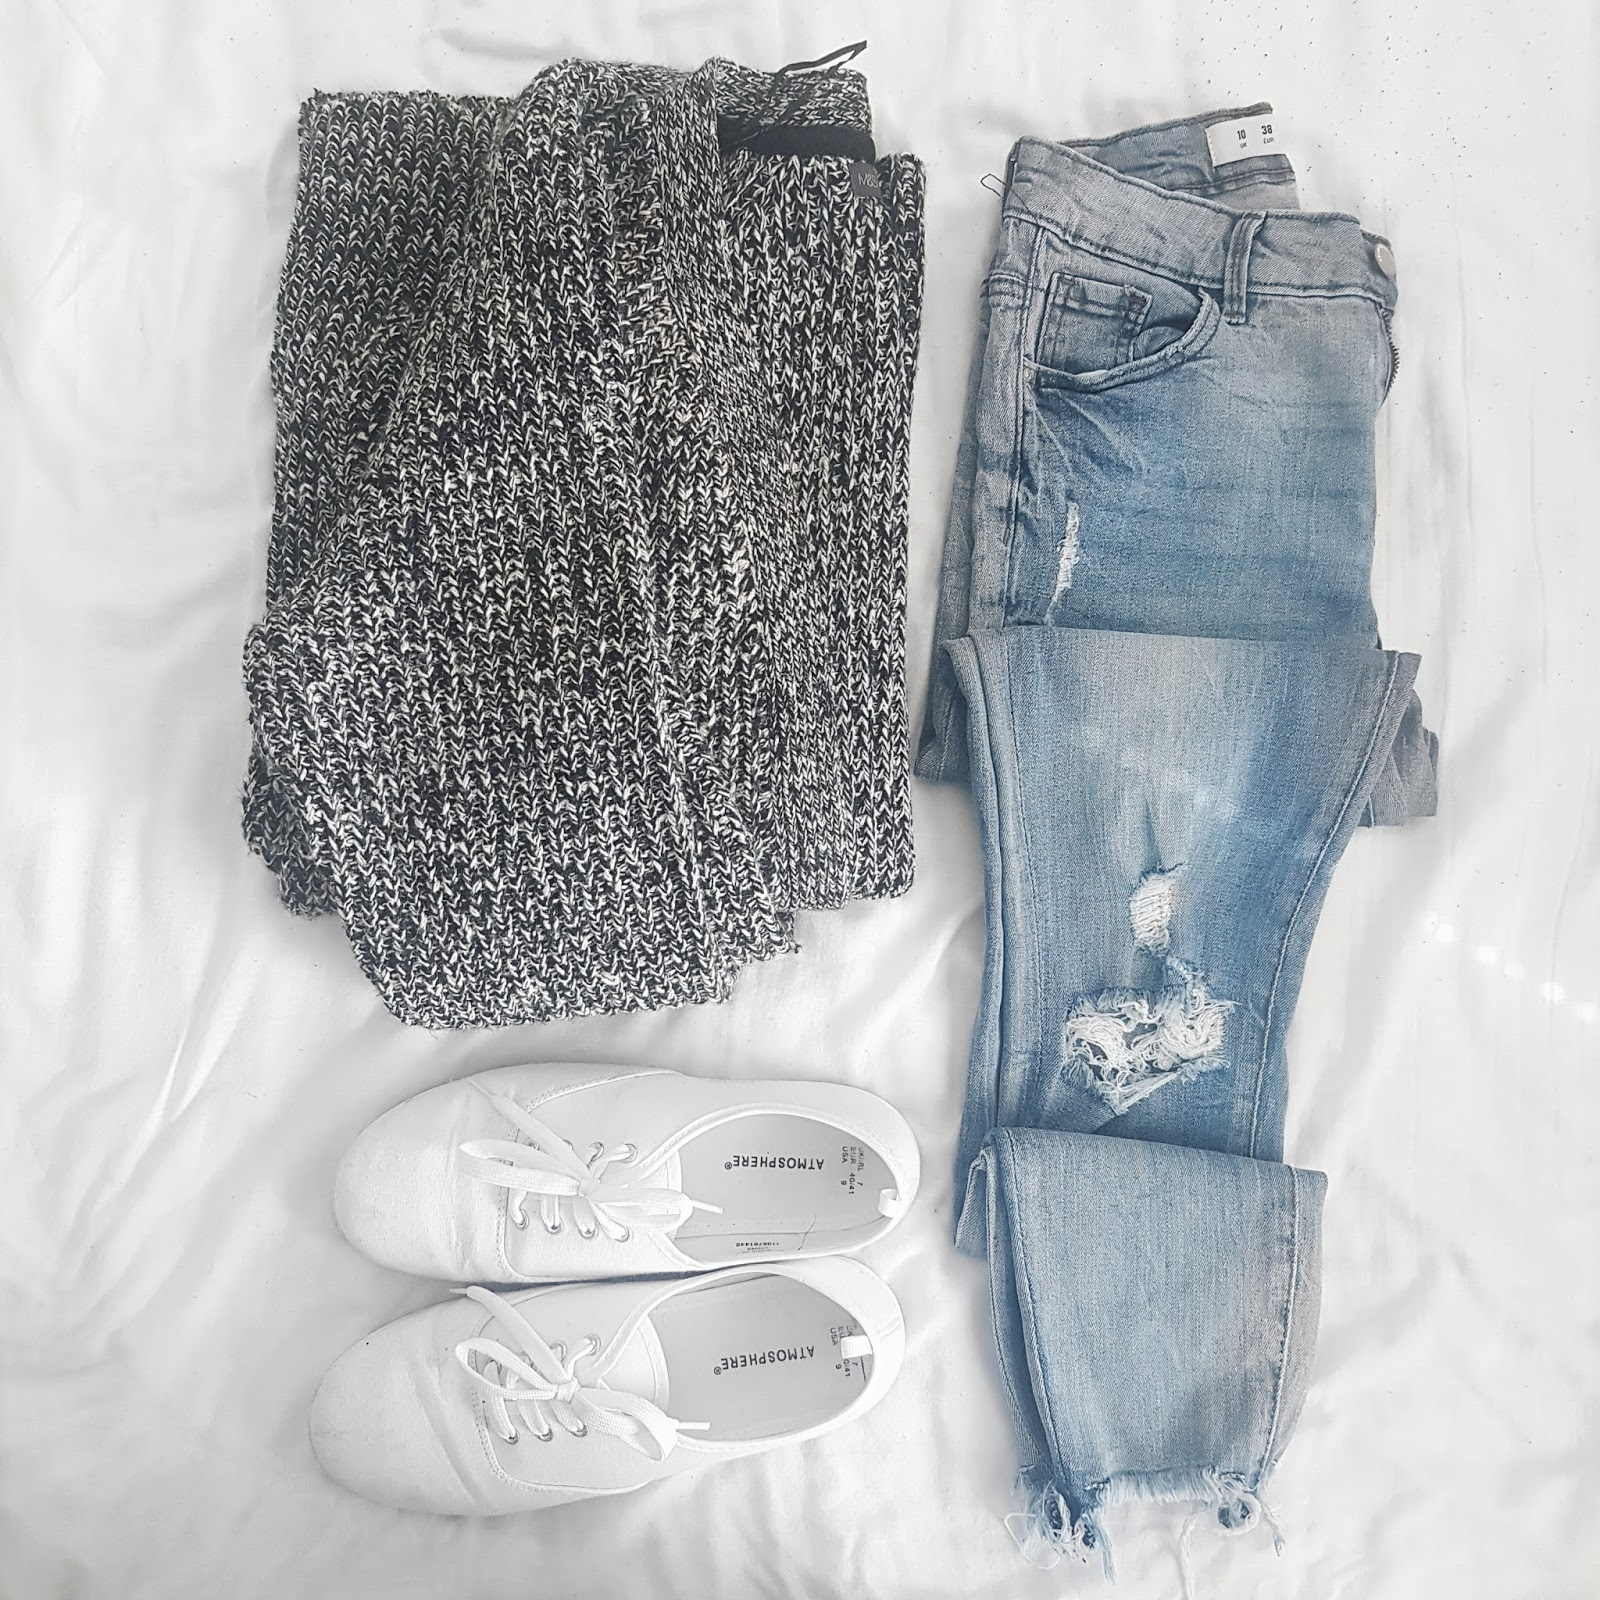 Cardigan, jeans, shoes